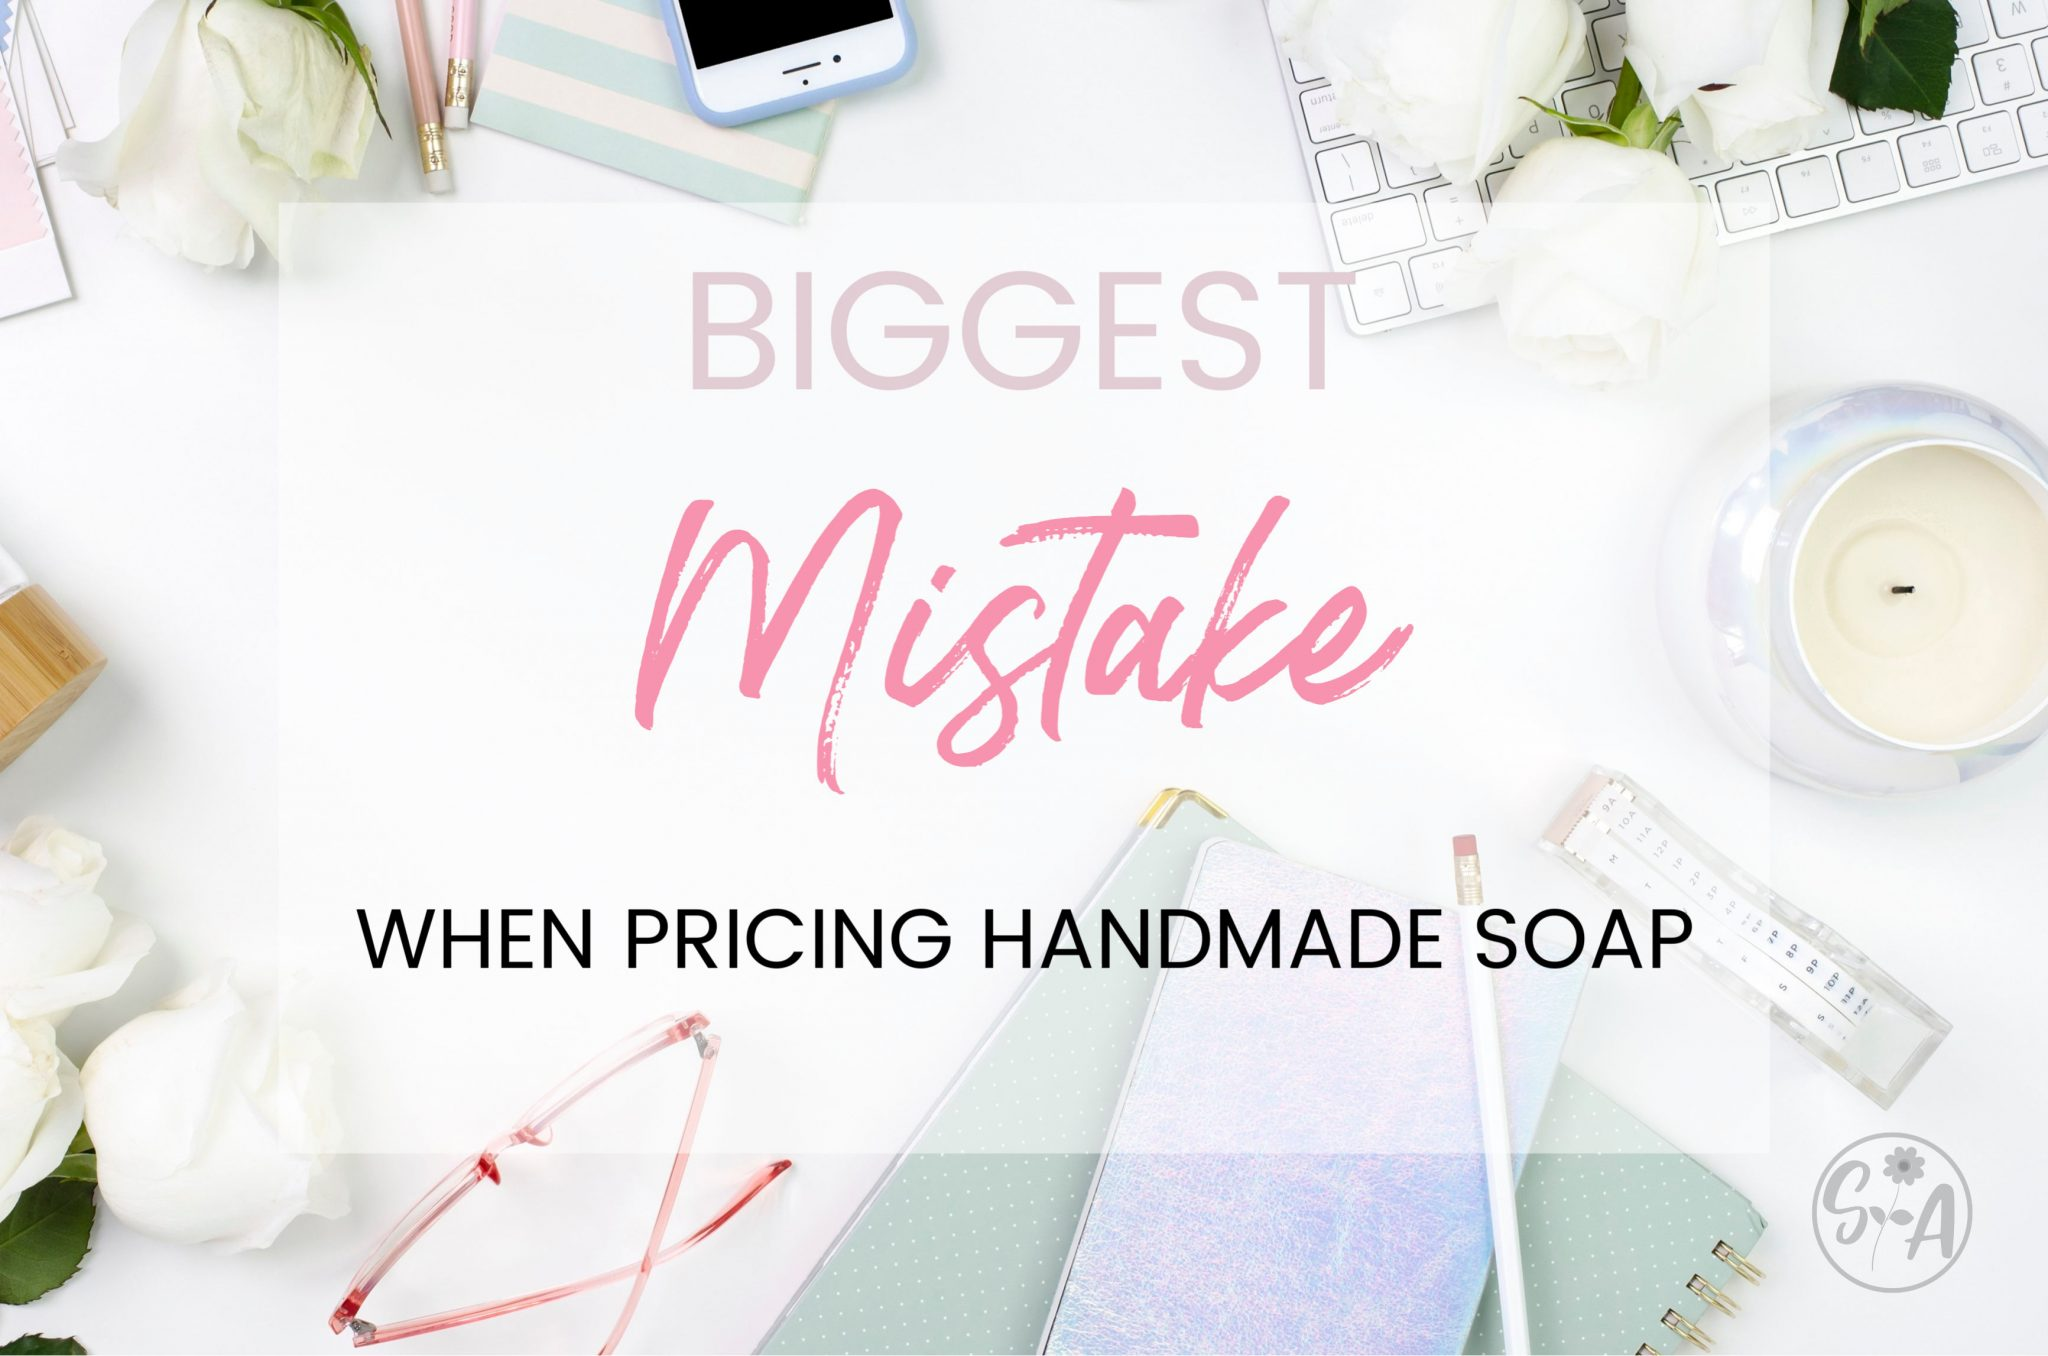 Biggest Mistake When Pricing Handmade Soap - Soap Authority